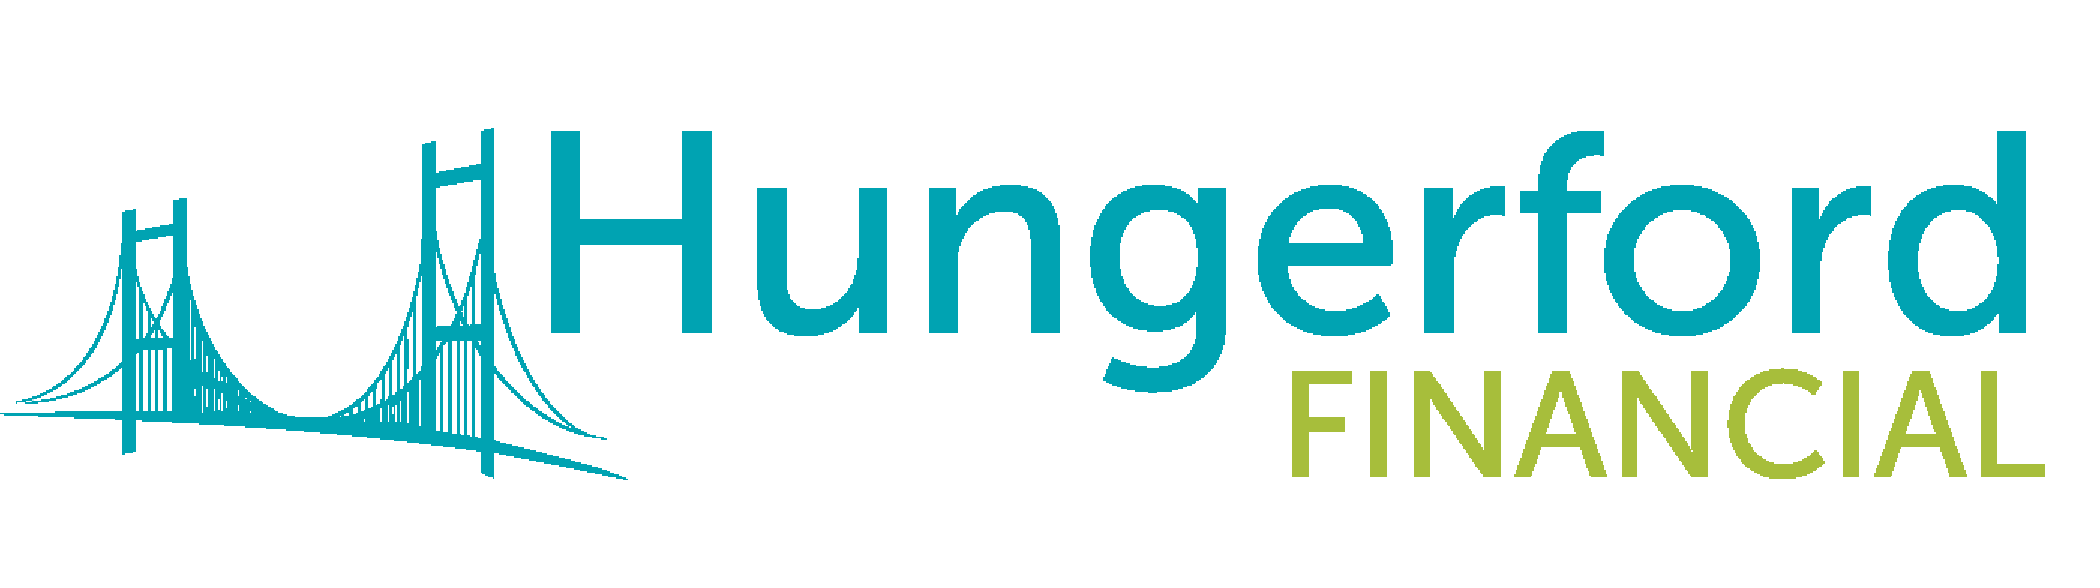 Hungerford Financial